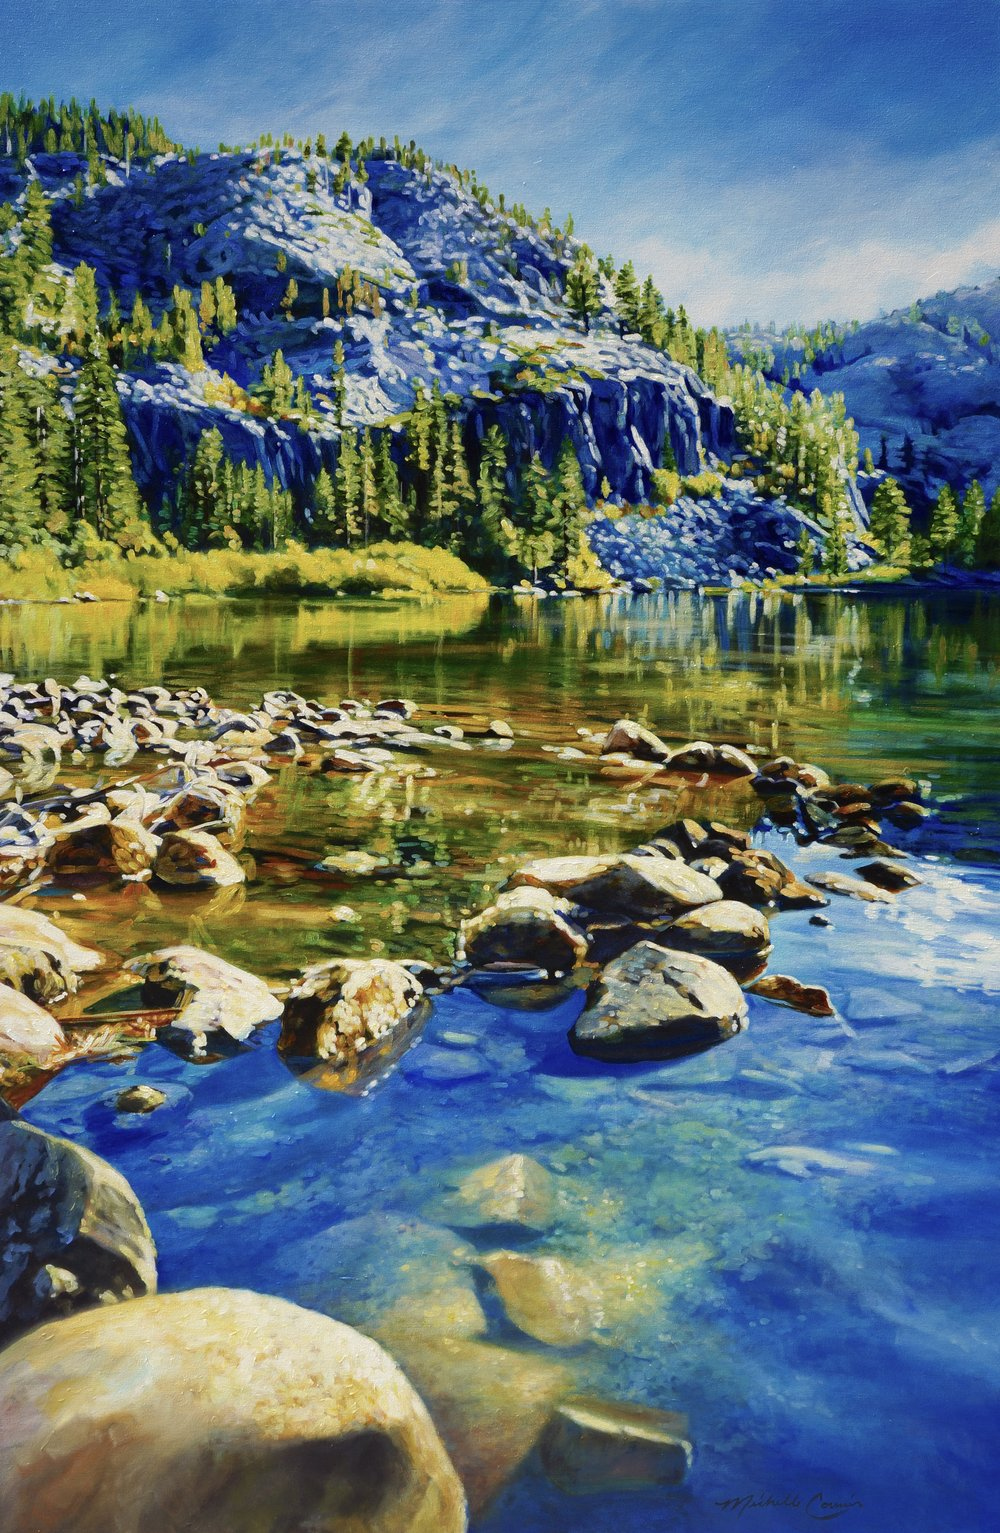 MOUNTAIN LAKE 48X72 IN  PRINTS AVAILABLE IN VARIOUS SIZES ON PAPER/CANVAS